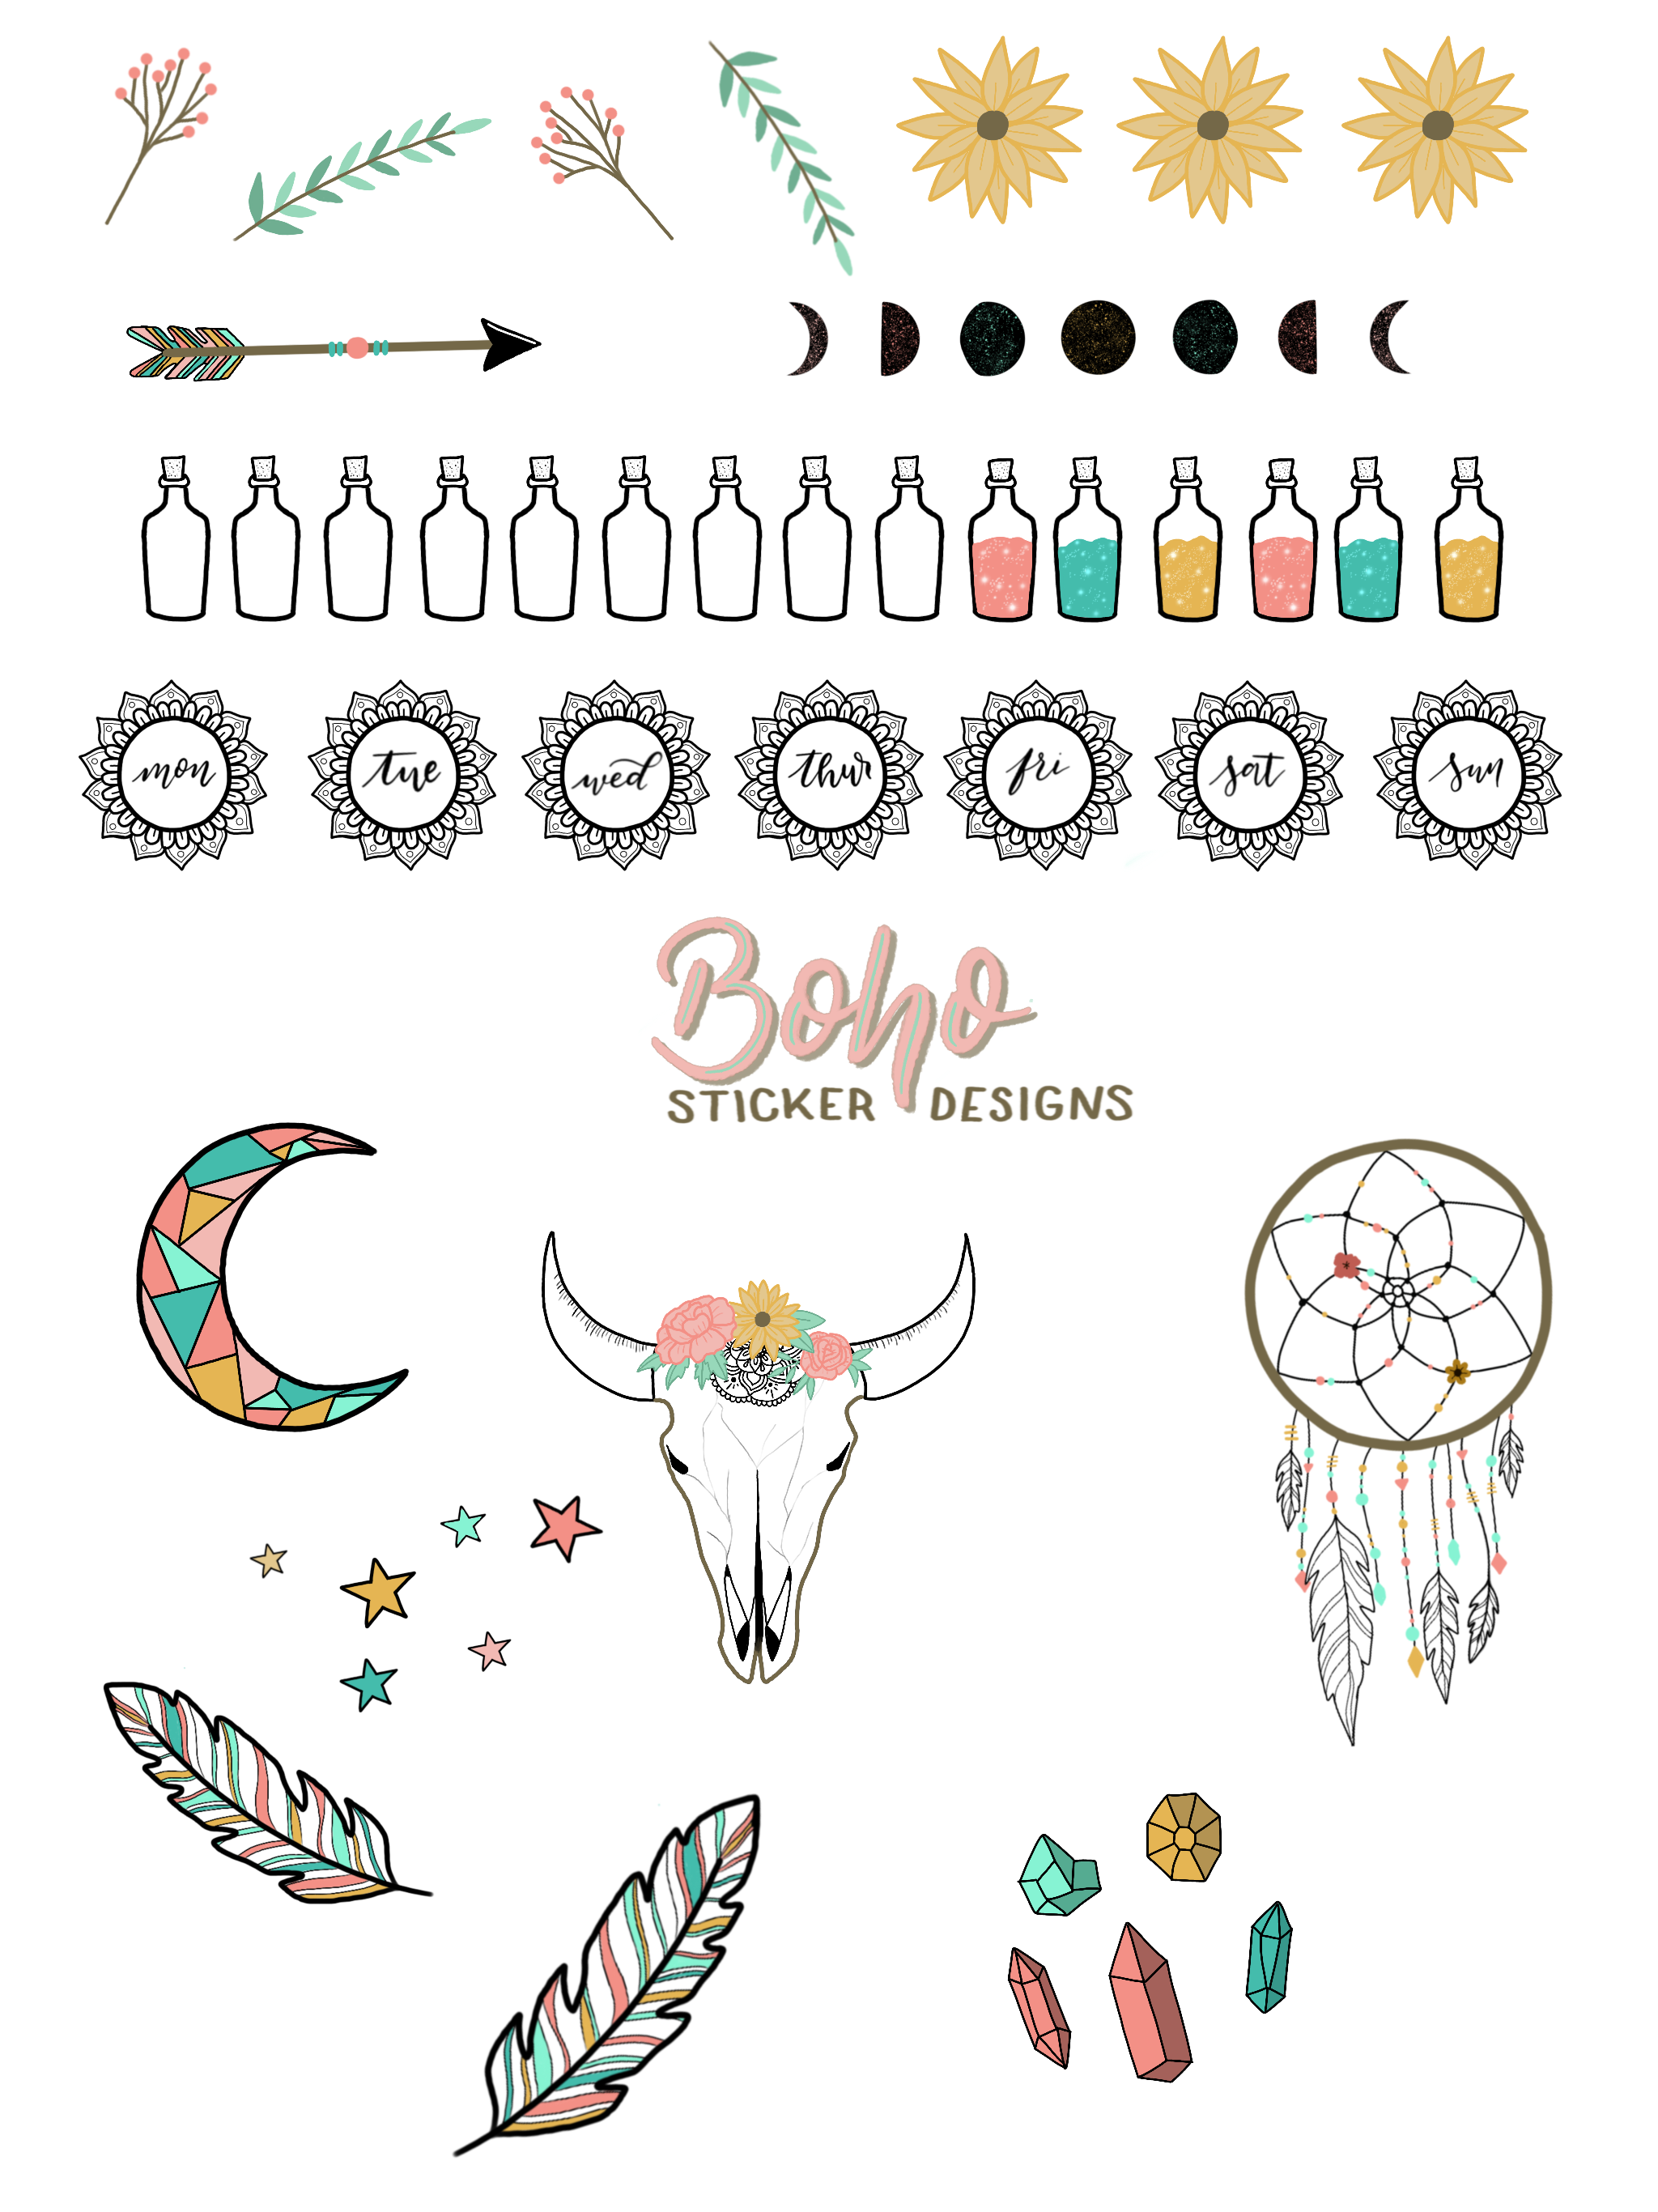 Free Printable Boho Doodle Stickers For Your Bullet Journal Bullet Journal Doodles Bullet Journal Art Journal Doodles [ 2732 x 2048 Pixel ]